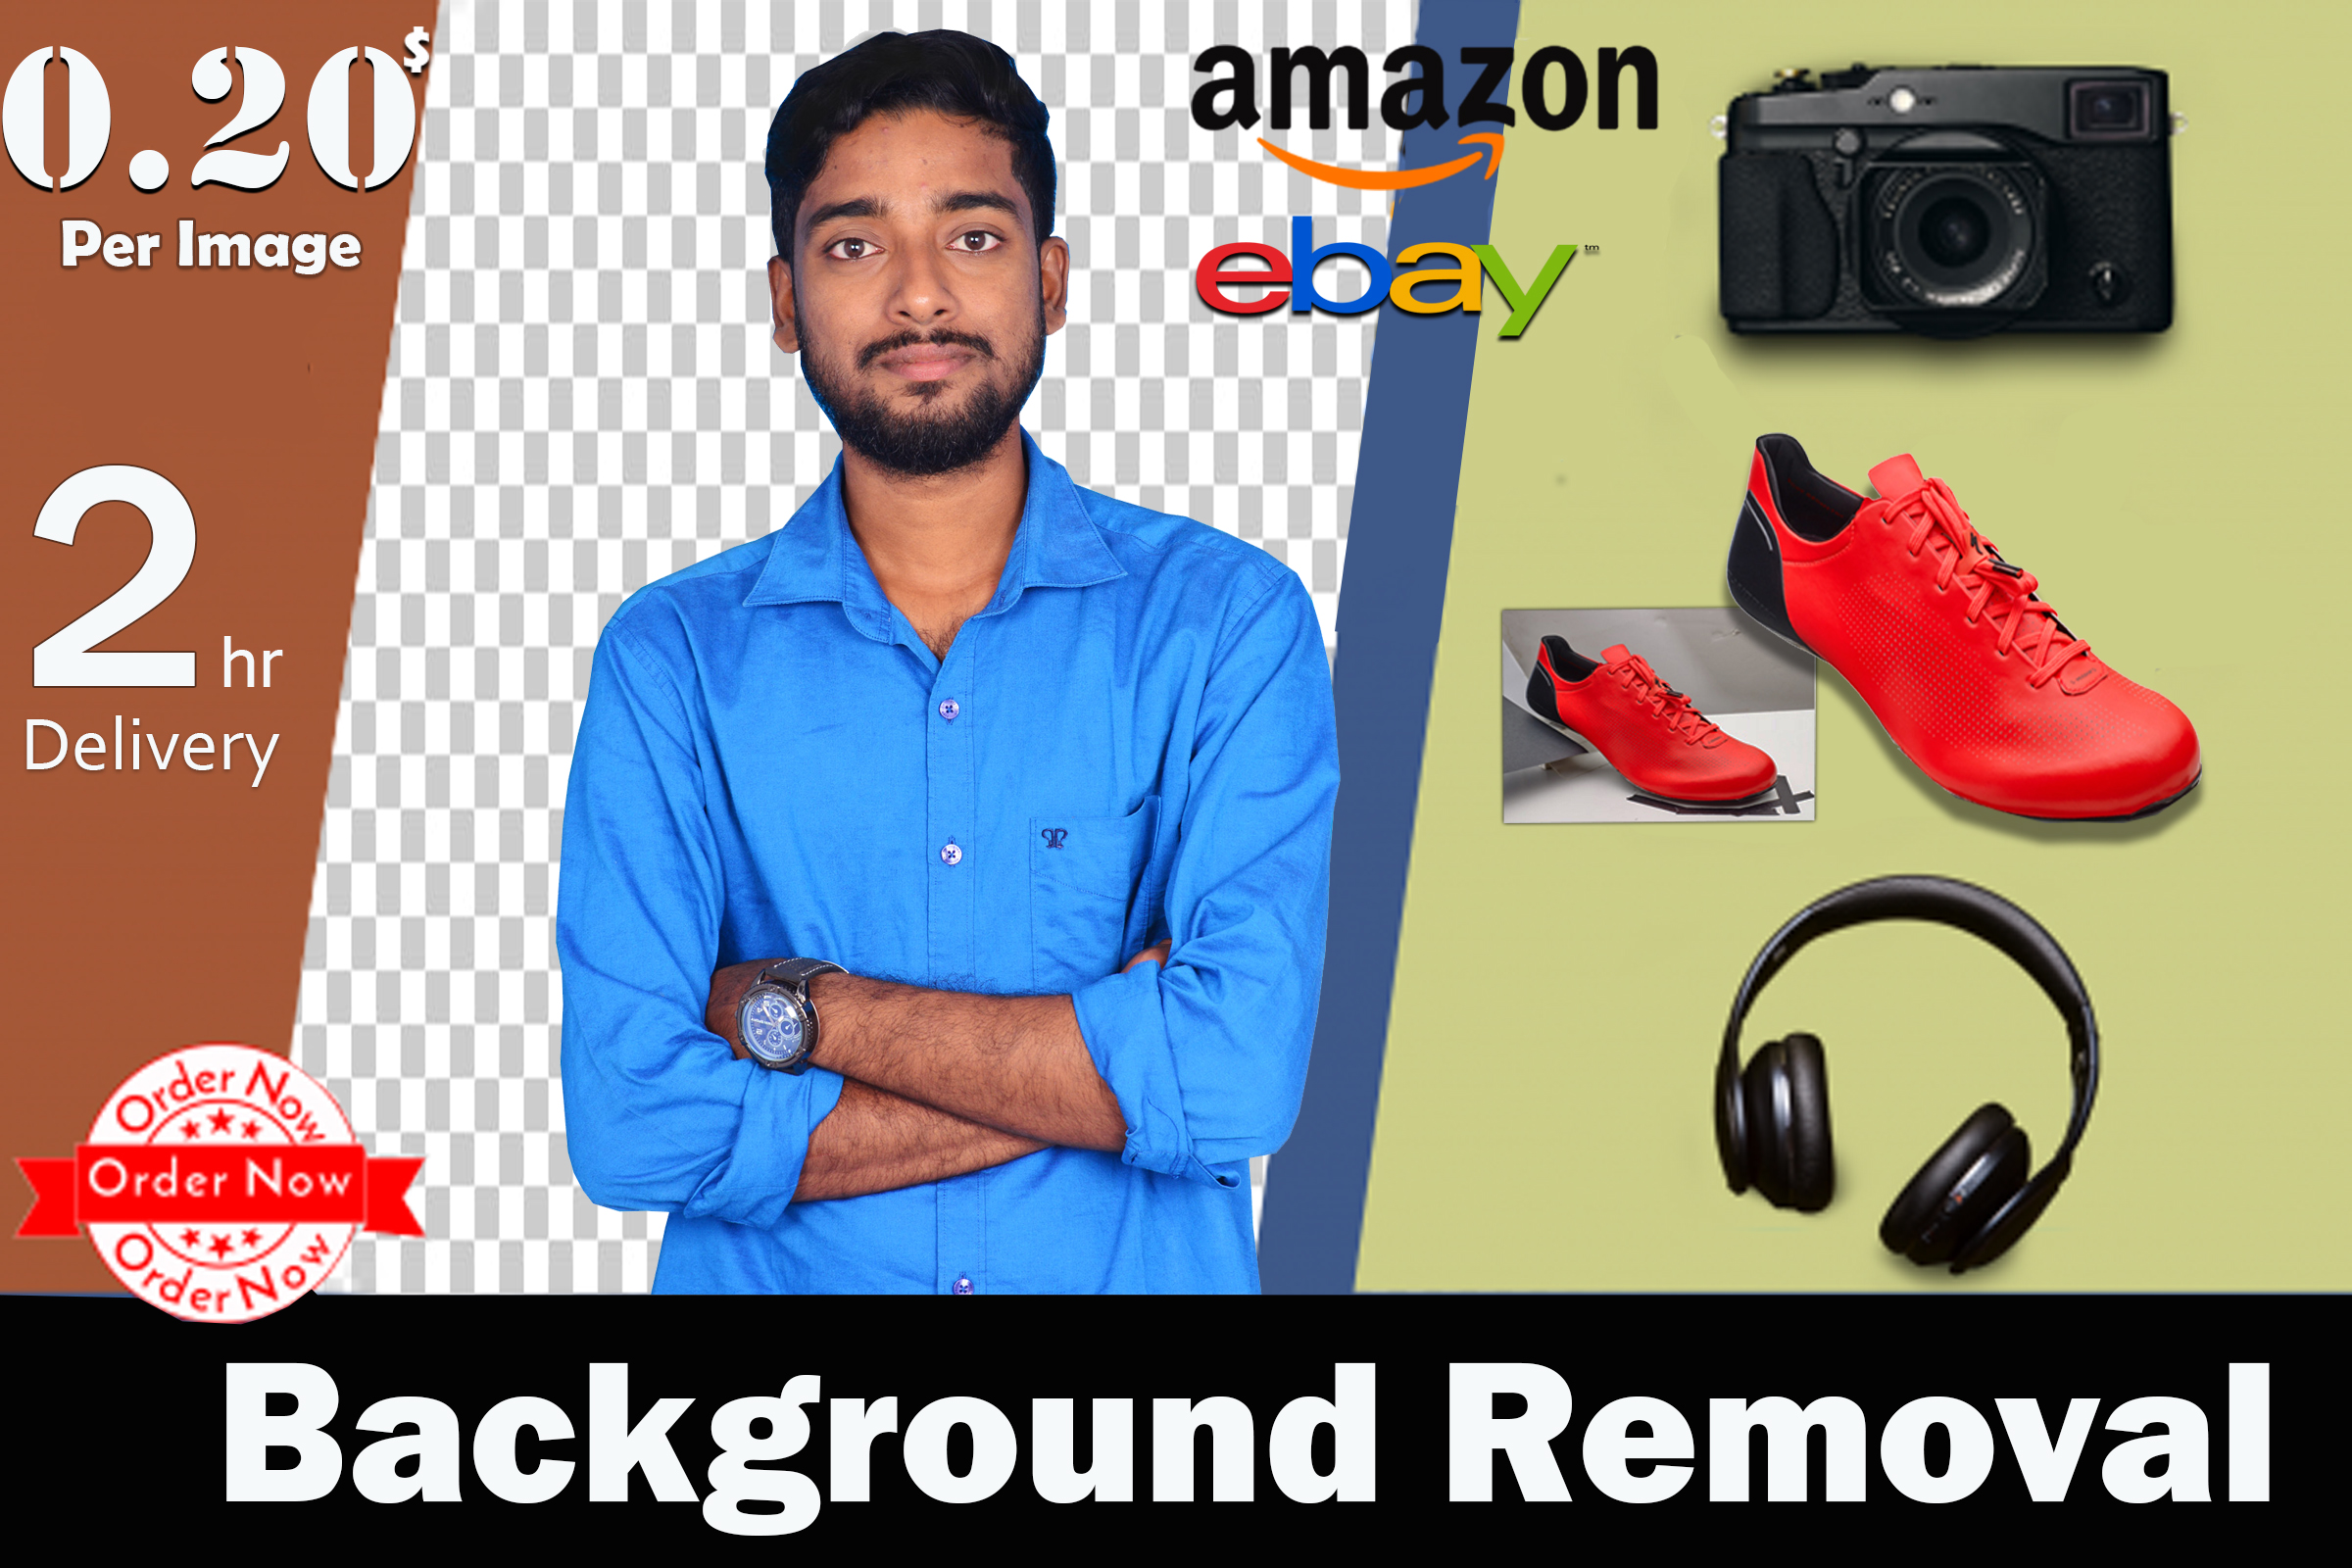 Super Fast photoshop editing & background removal, crop, resoze, remove watermark & vector art